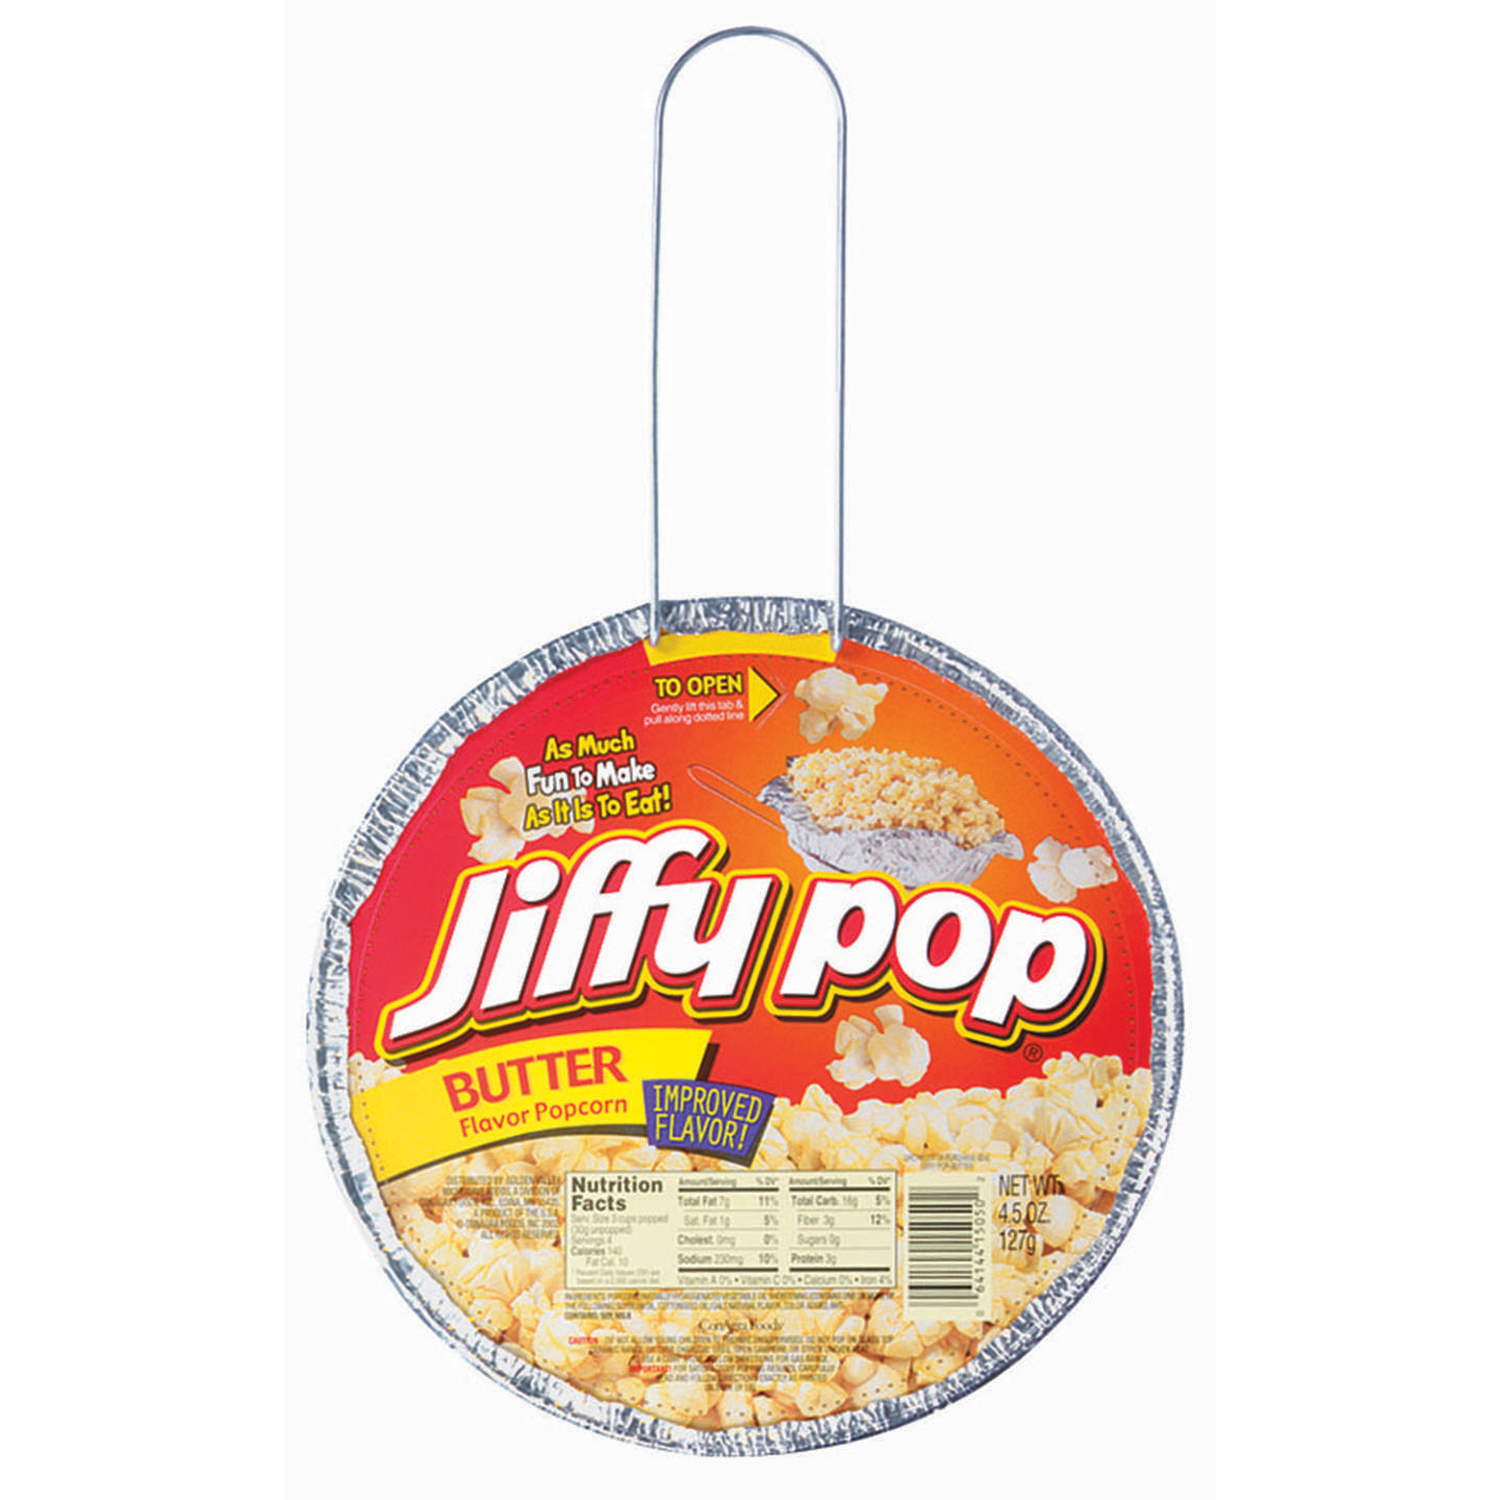 Jiffy Pop Butter Flavored Popcorn, 4.5 Oz. by ConAgra Foods Inc.